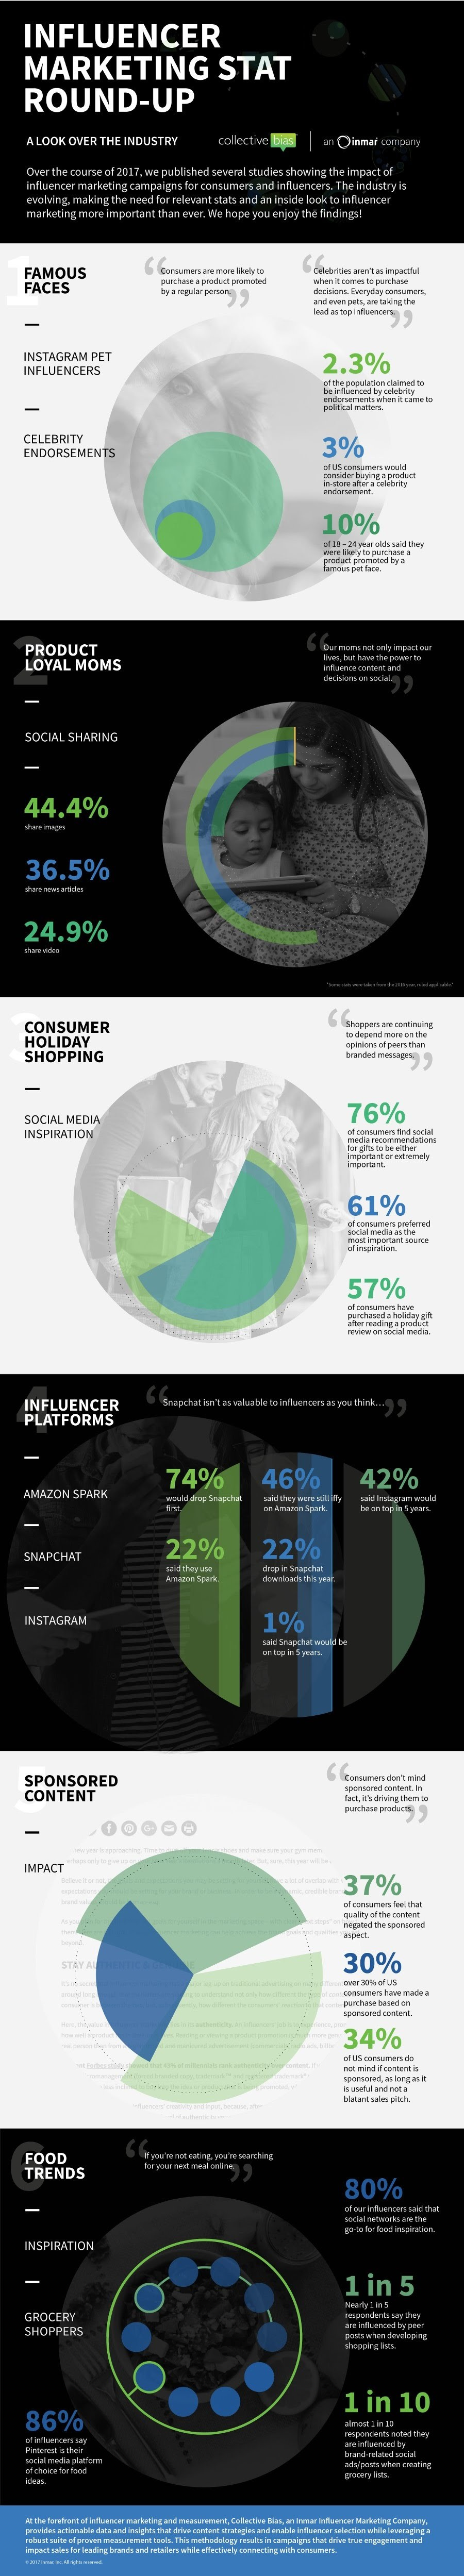 Influencer Marketing Stats Round-Up [Infographic]